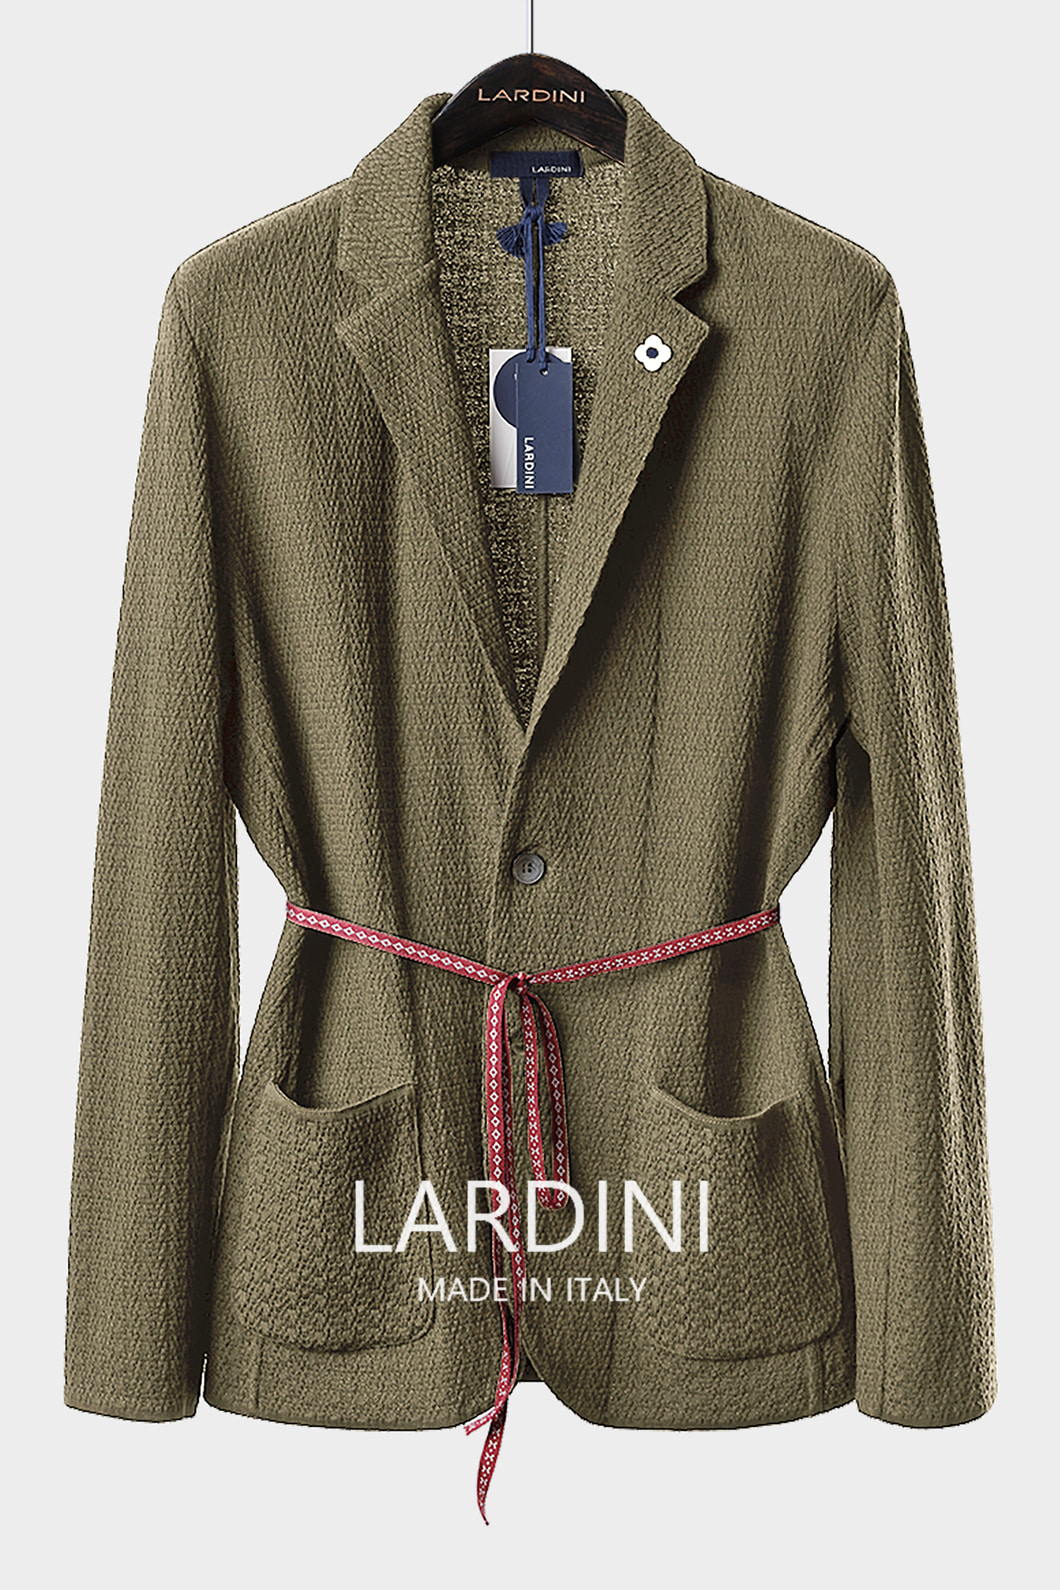 LARDINI SINGLE DIAMOND KNIT JACKET-BEIGE[ITALY-Original]-극소량 한정!